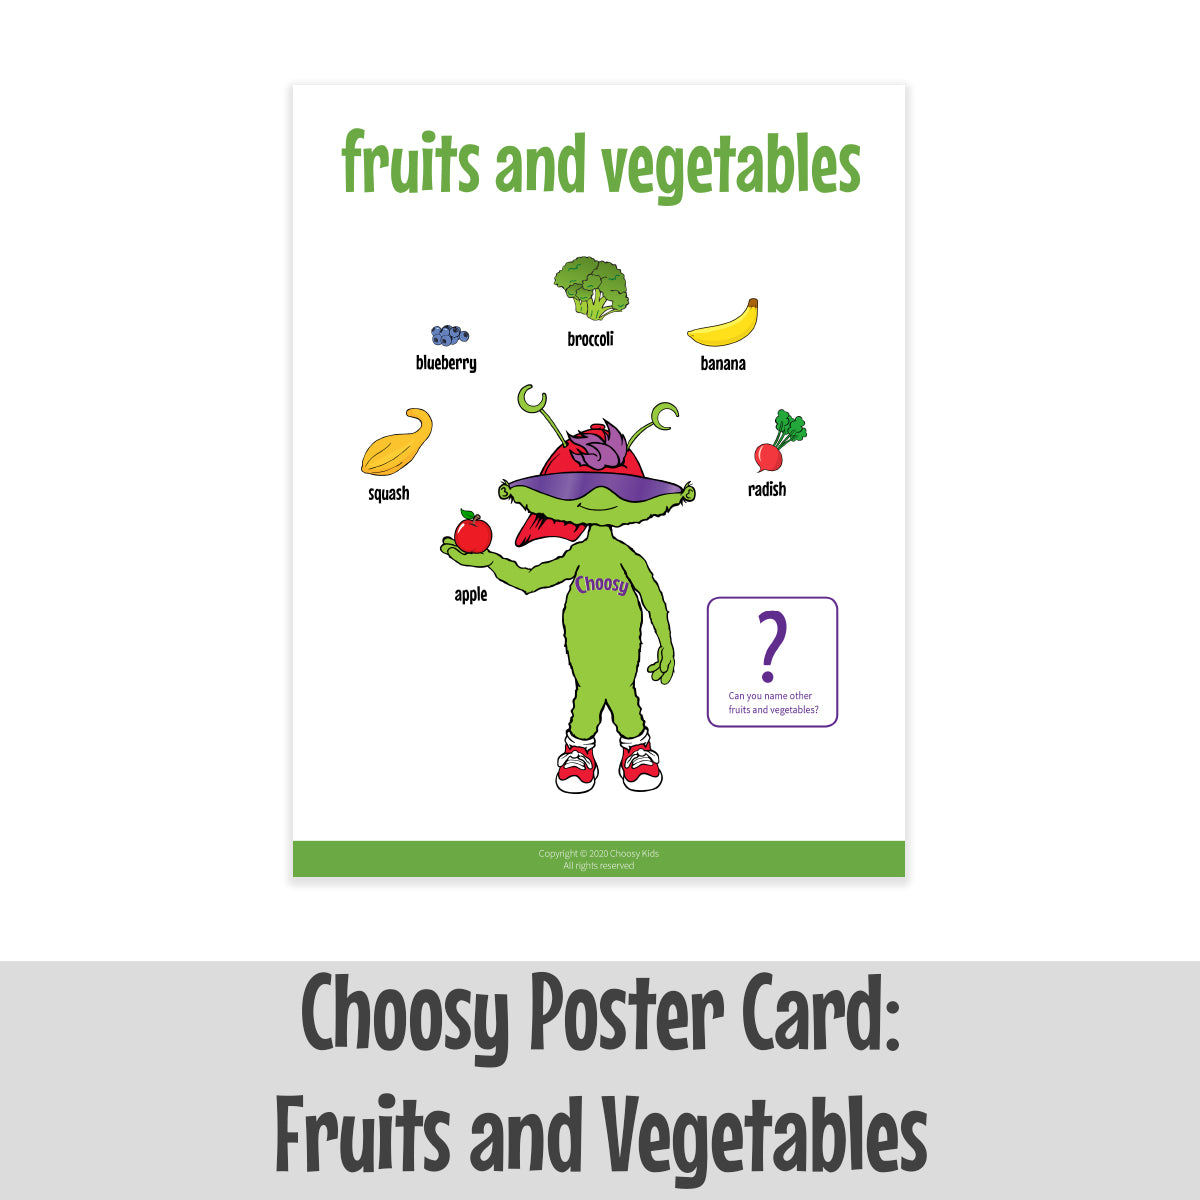 Choosy Poster Card: Fruits and Vegetables